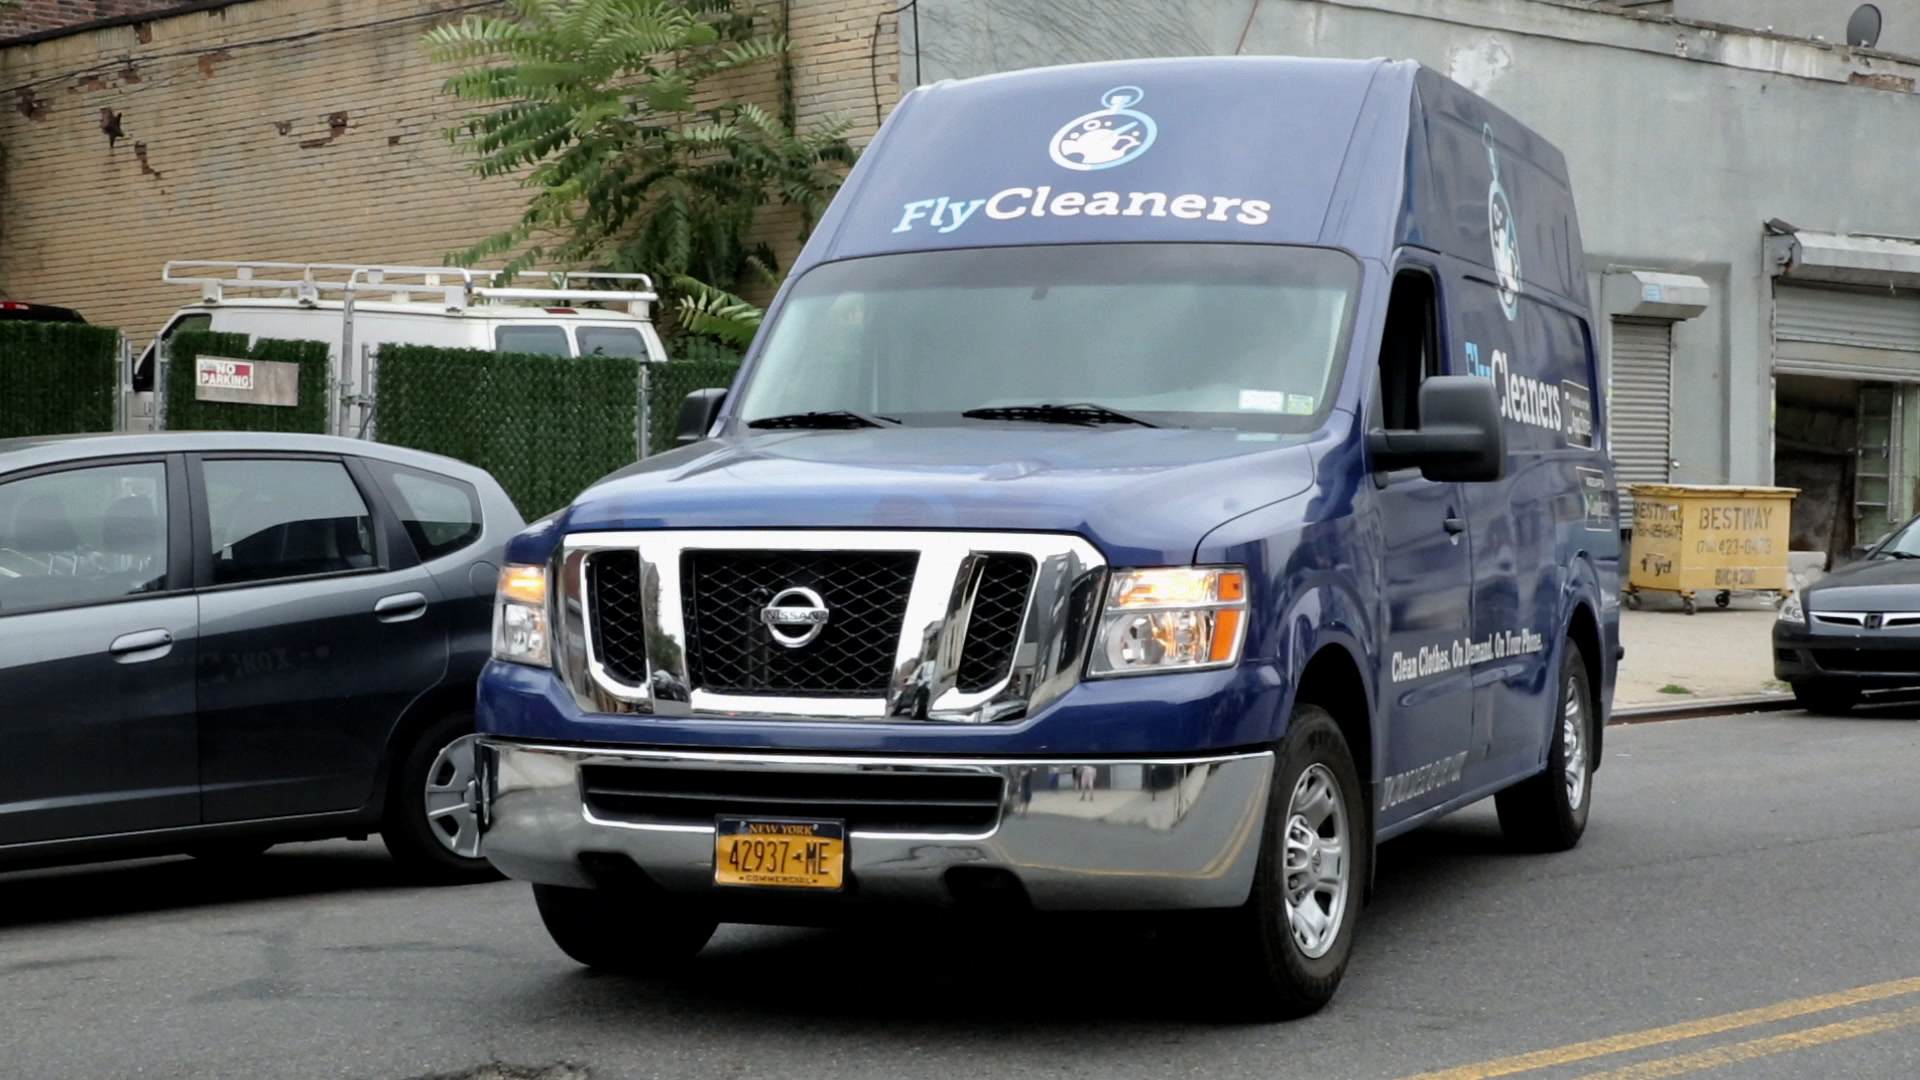 FlyCleaners | Built in Brooklyn